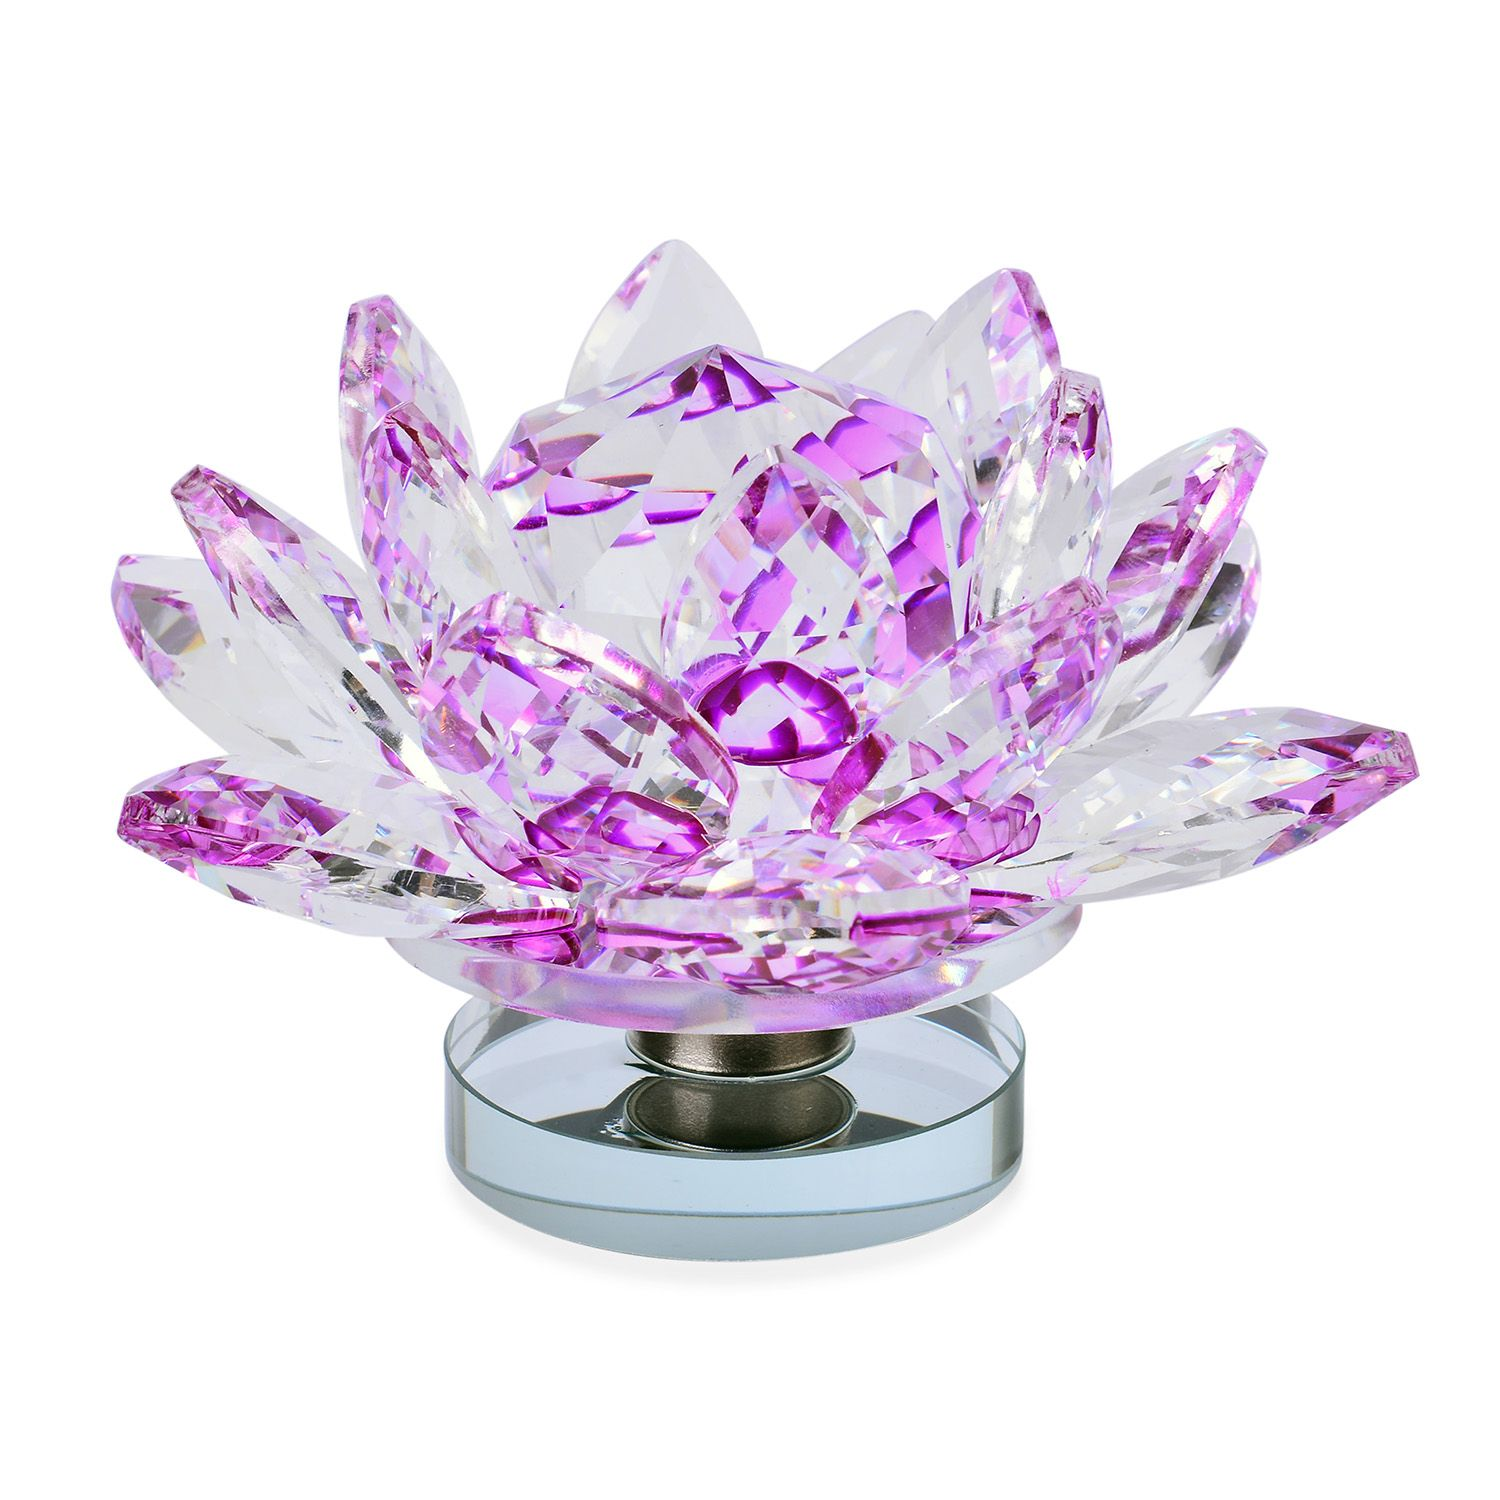 Home Decorative Crystal Lotus Flower Tgw 2345000 Cts Shop Lc